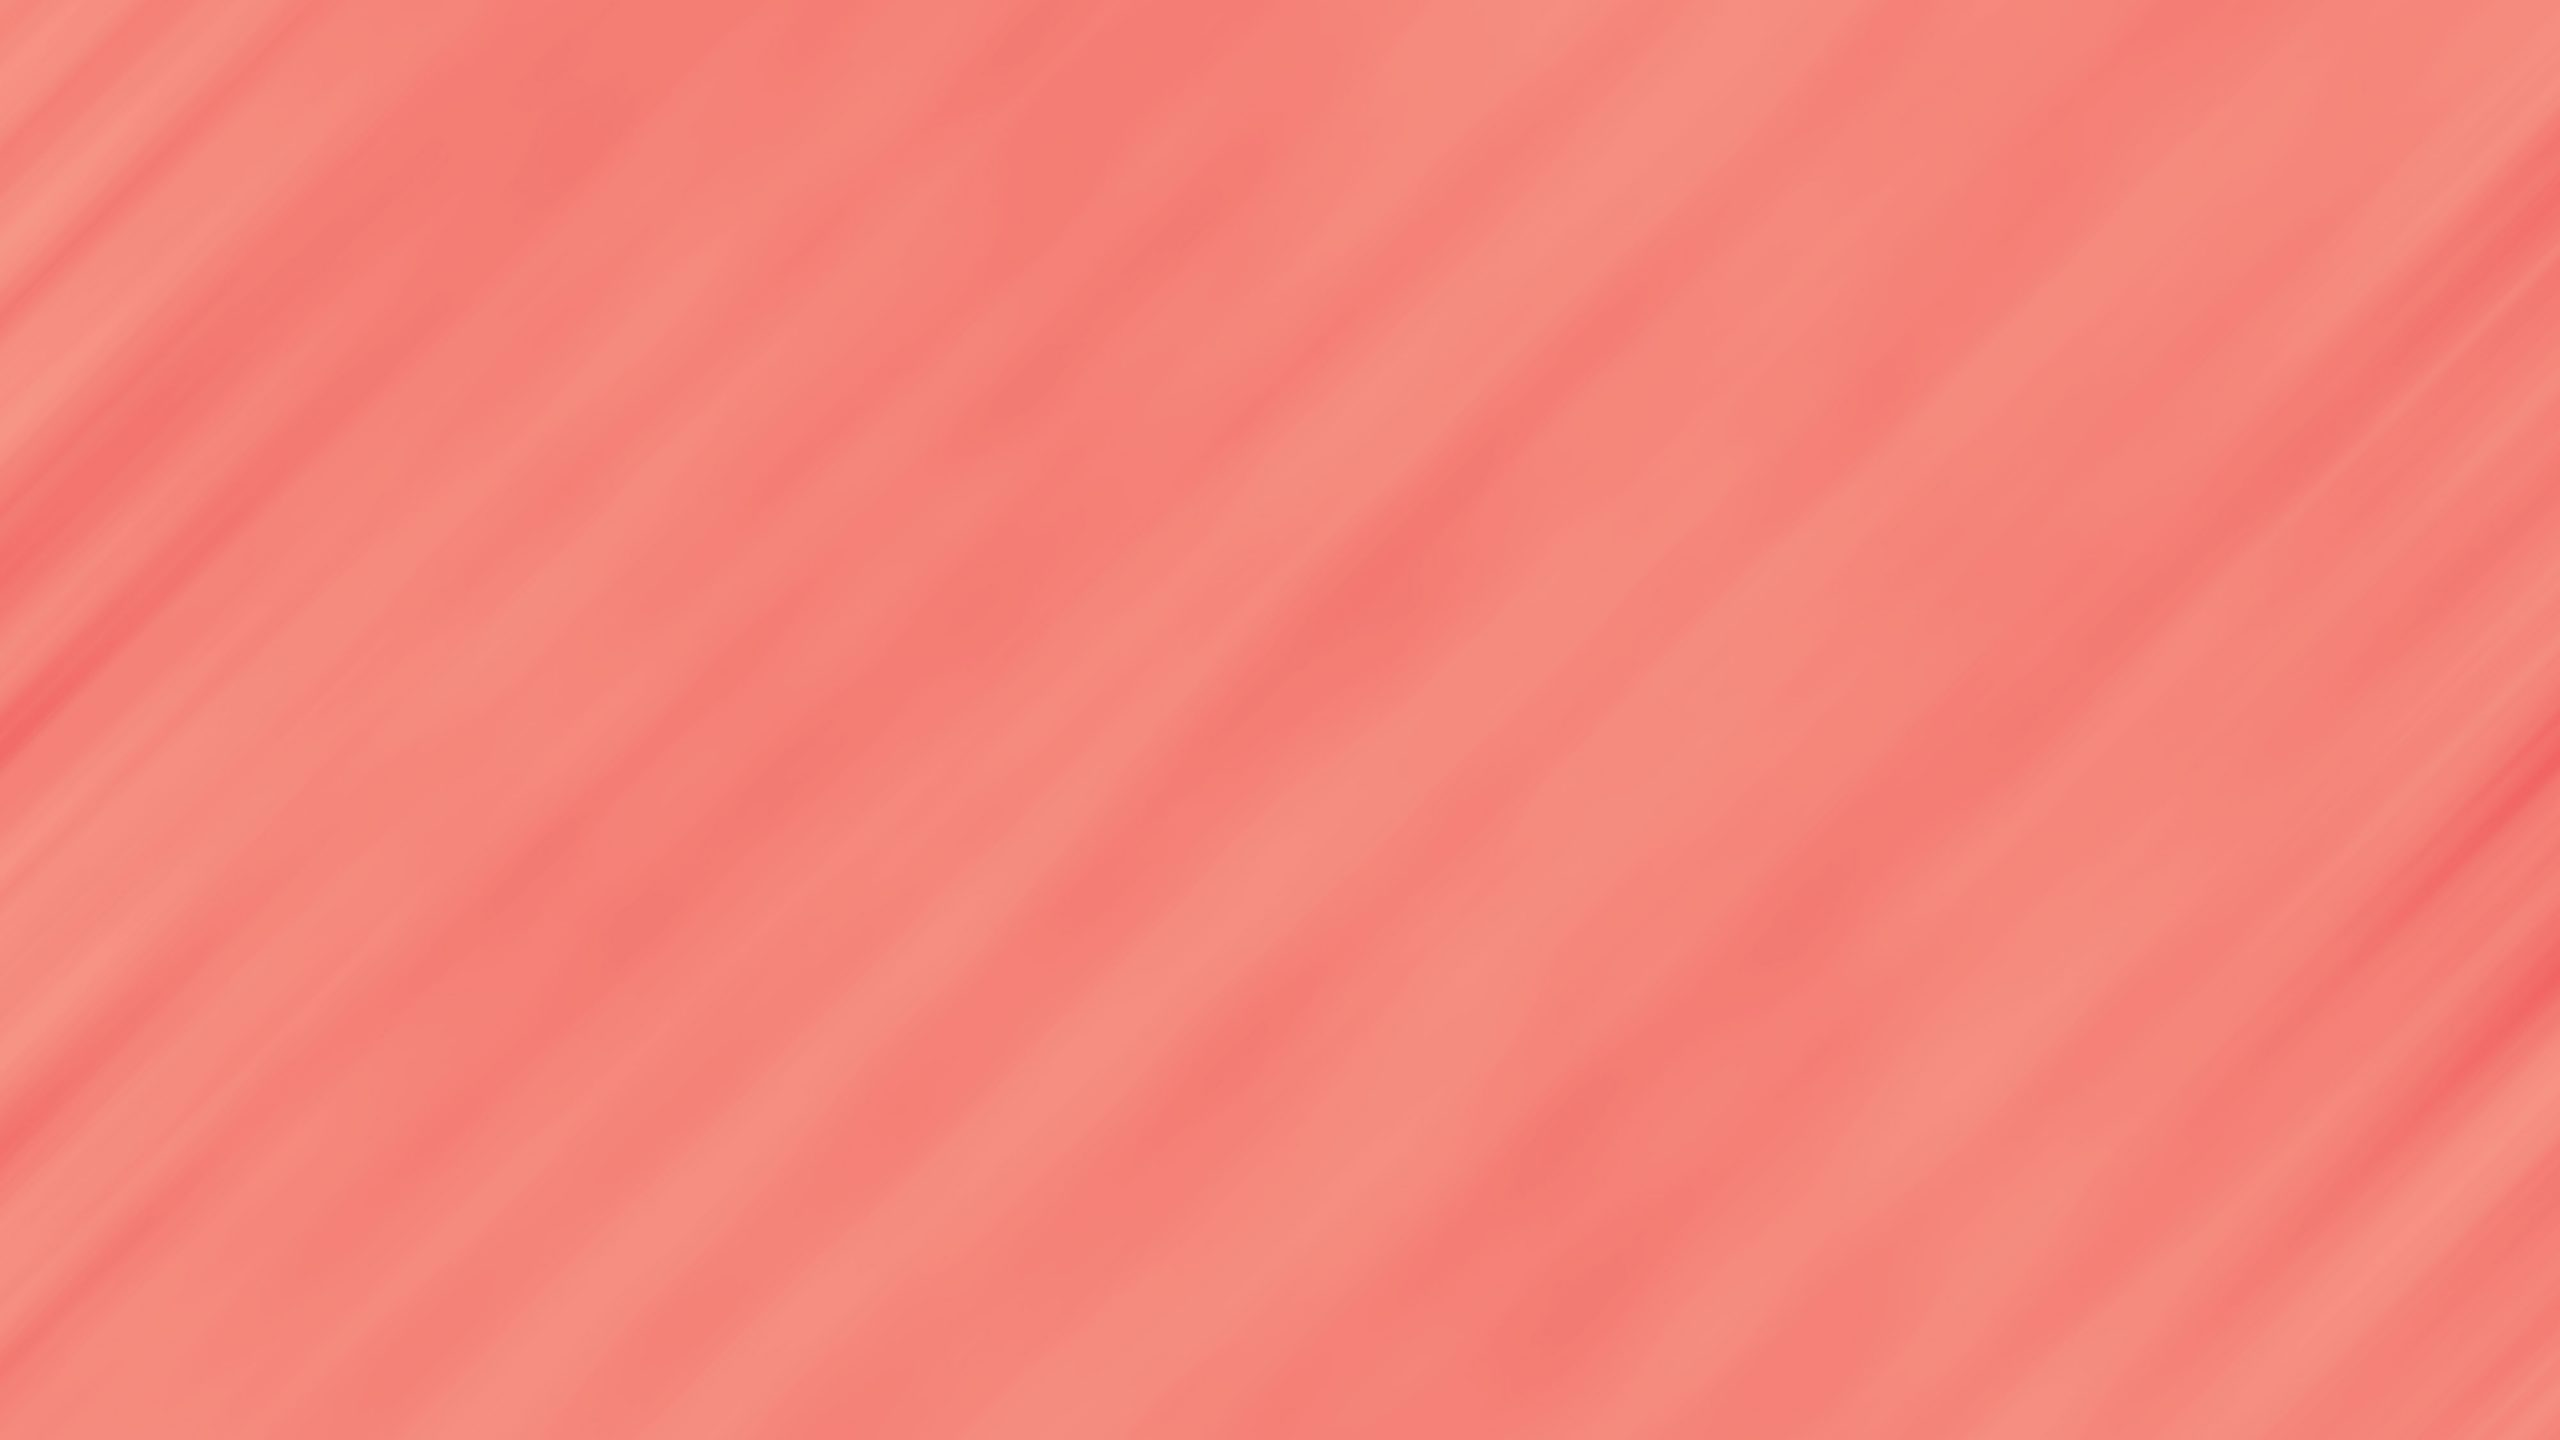 pinkish-strips-abstract-background-wallpaper